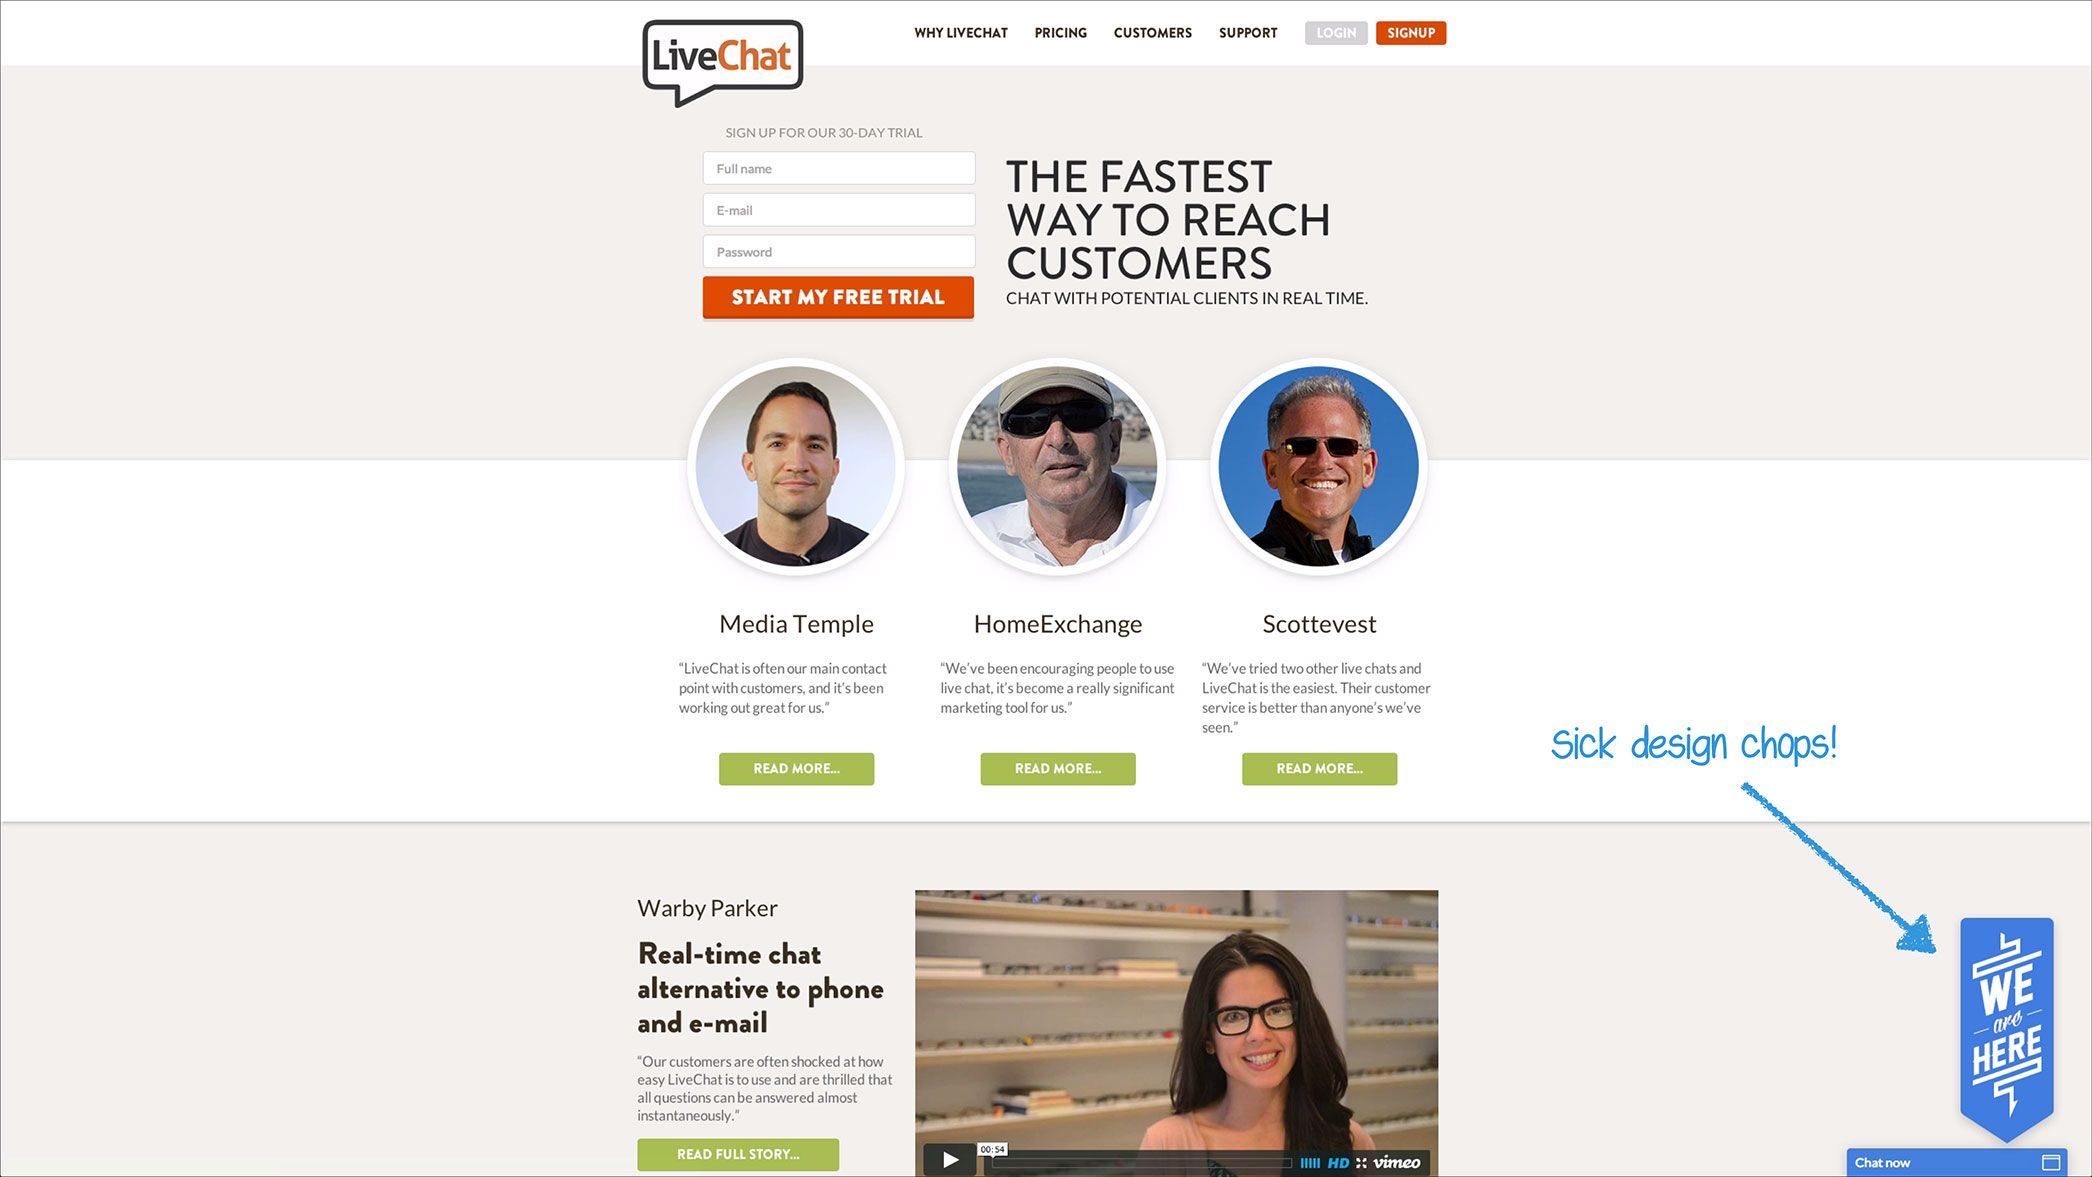 How livechat onboards new users user onboarding great reads